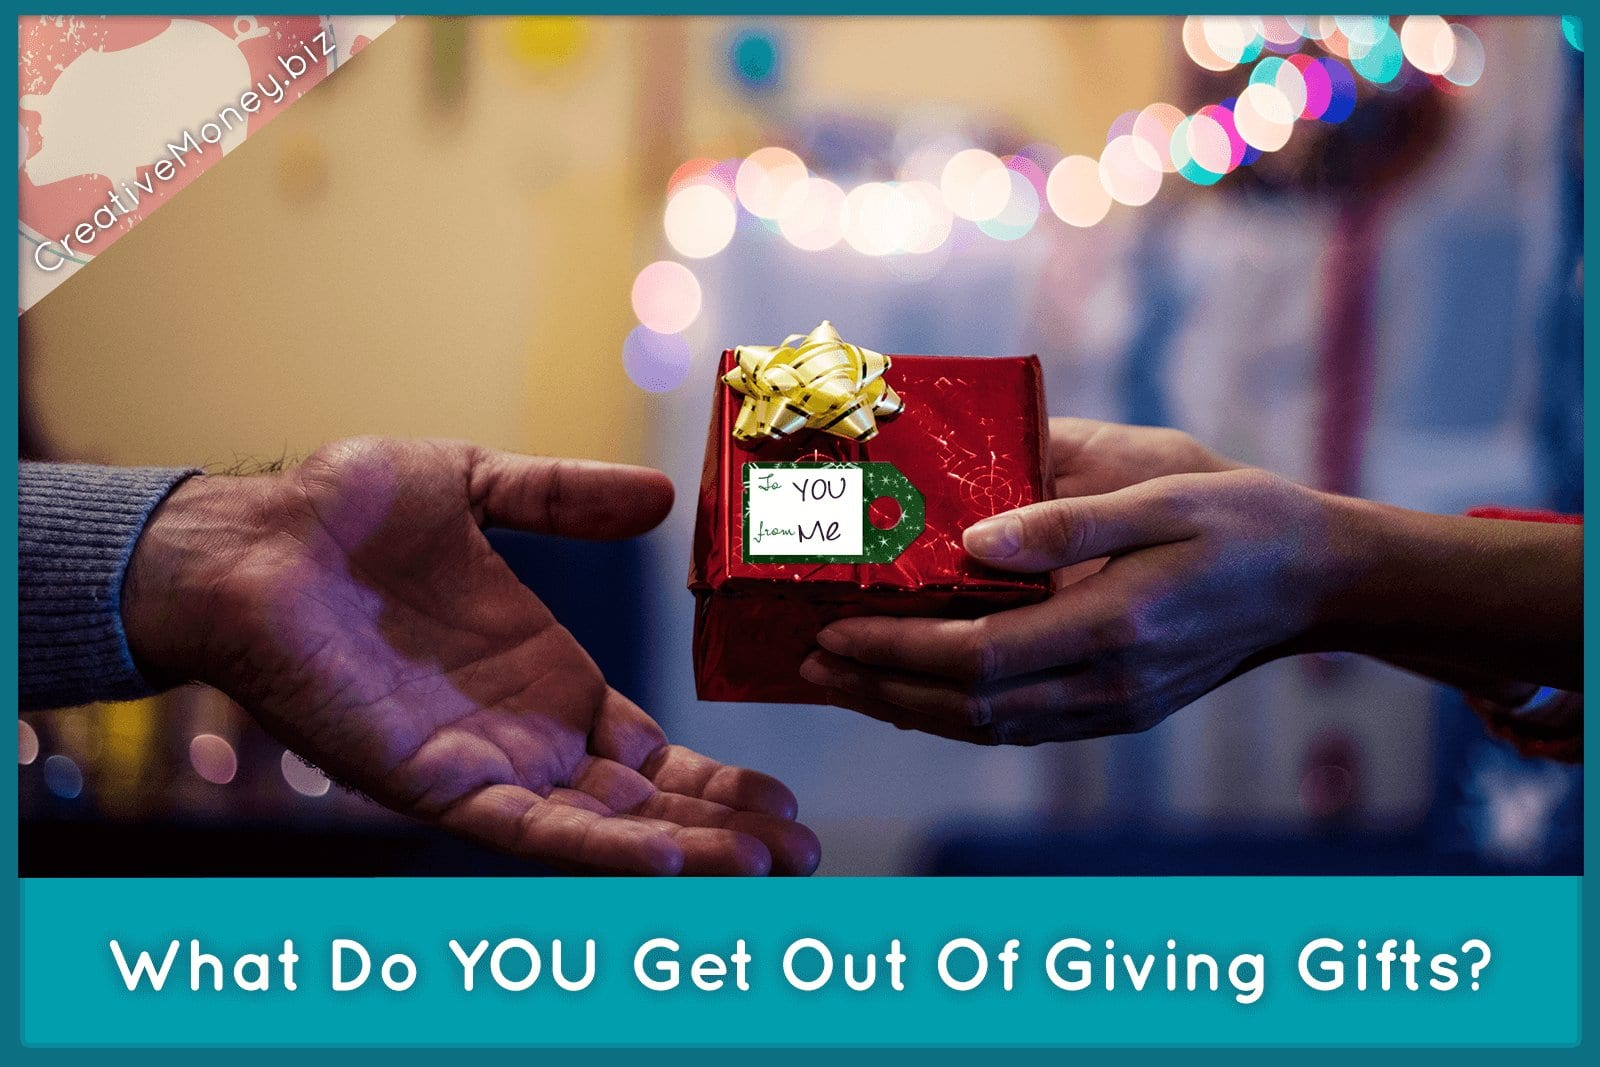 What Do YOU Get Out of Giving Gifts